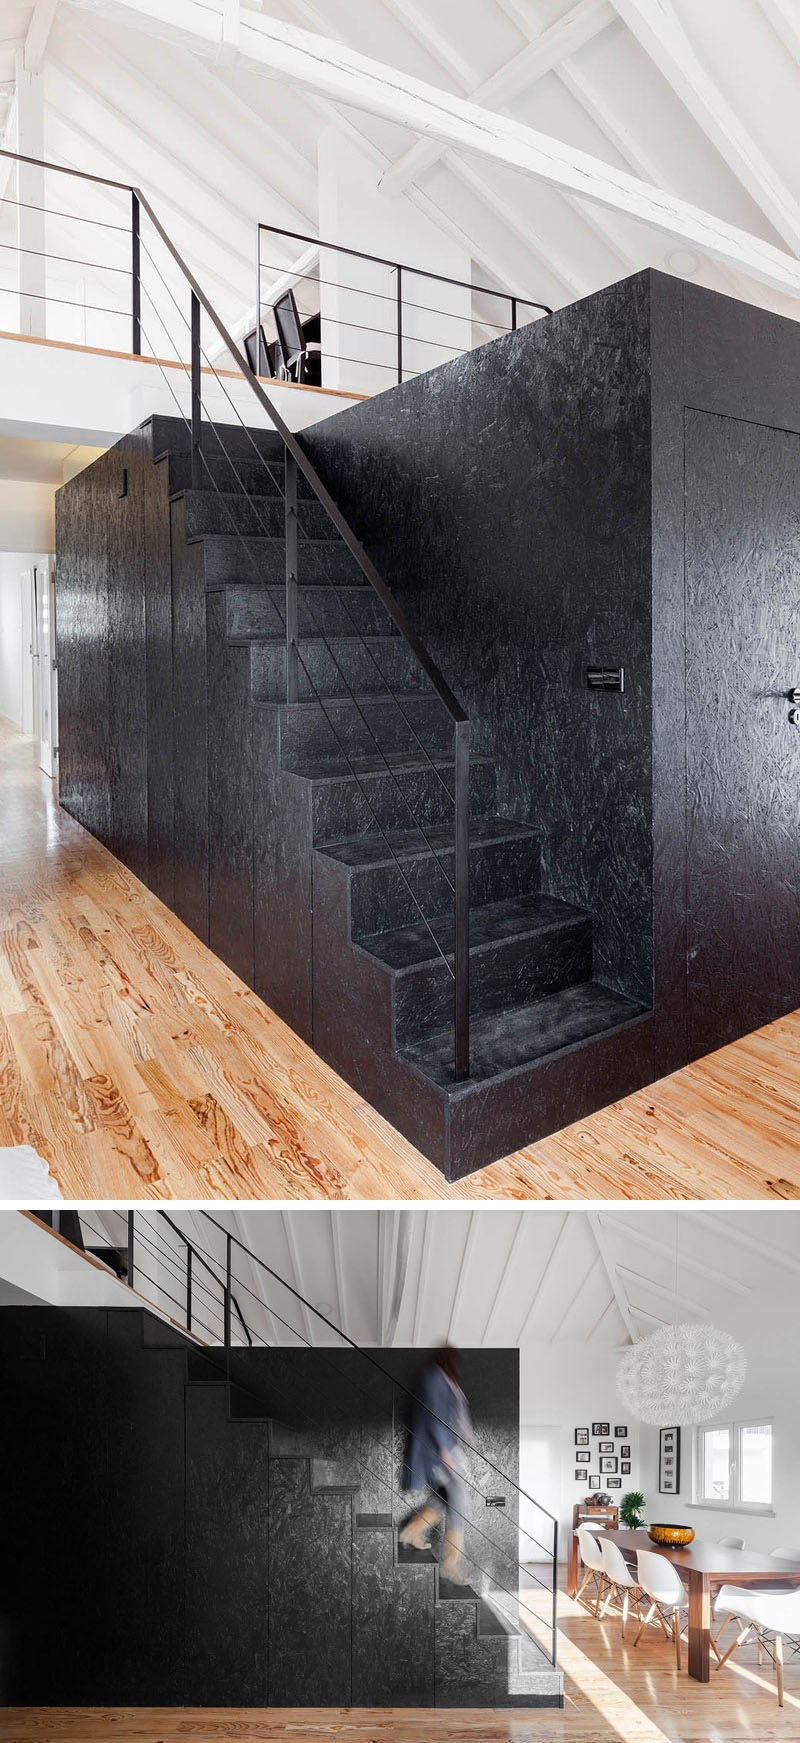 12 Black Stairs That Add A Sophisticated Touch To These Modern Homes | Black Granite Staircase Designs | Marble | Polished Granite | Floor Stair Circular | Kota Stone Staircase | Jet Black